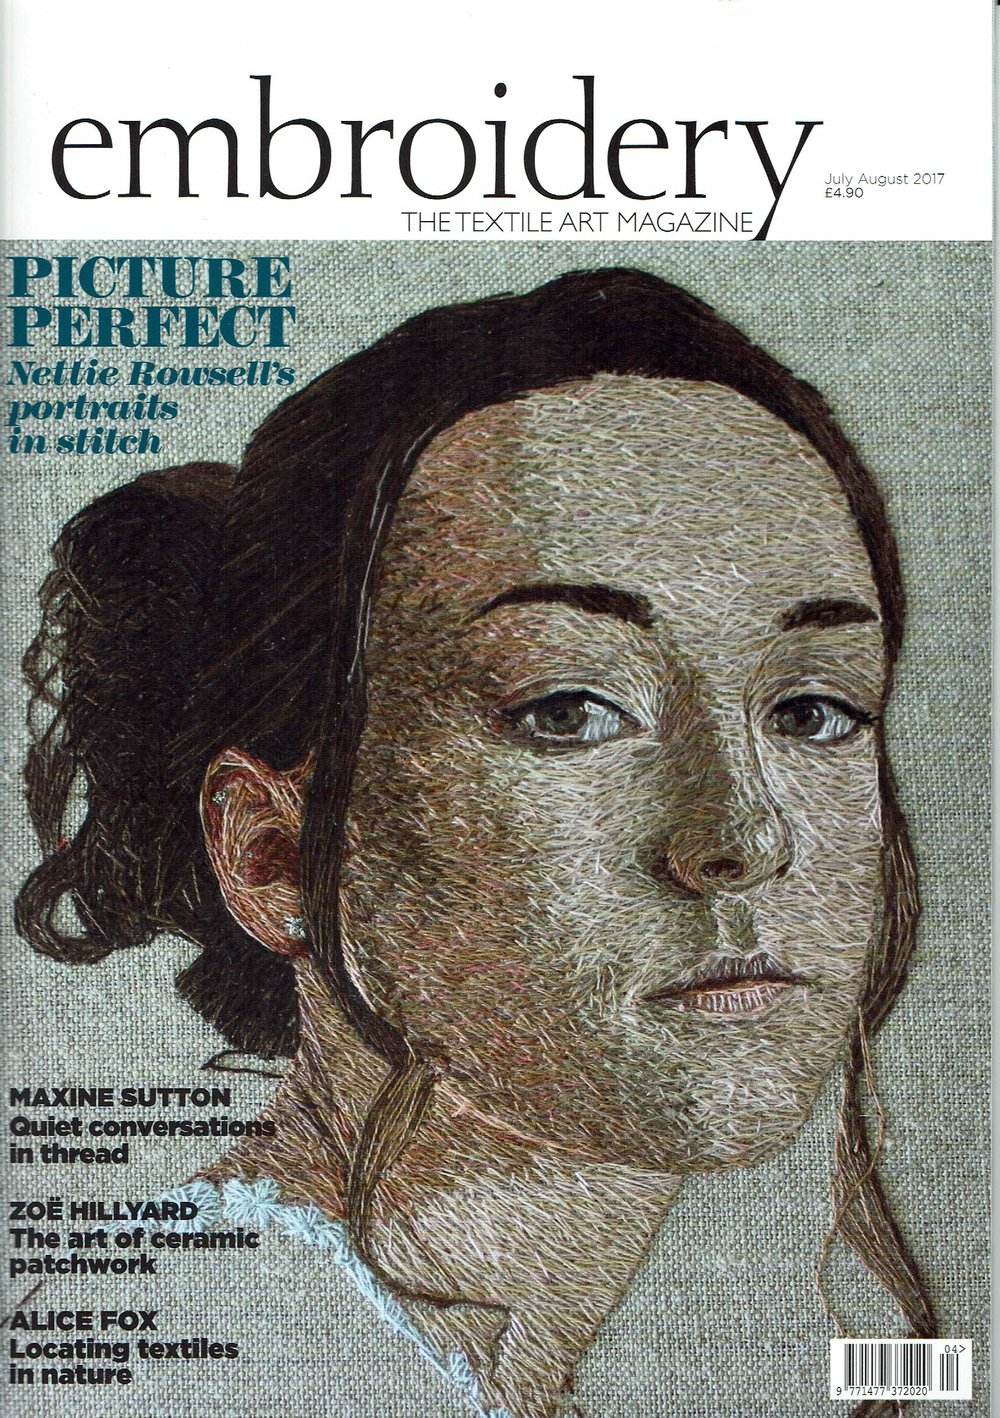 embroiderycoverjuly2017.jpg